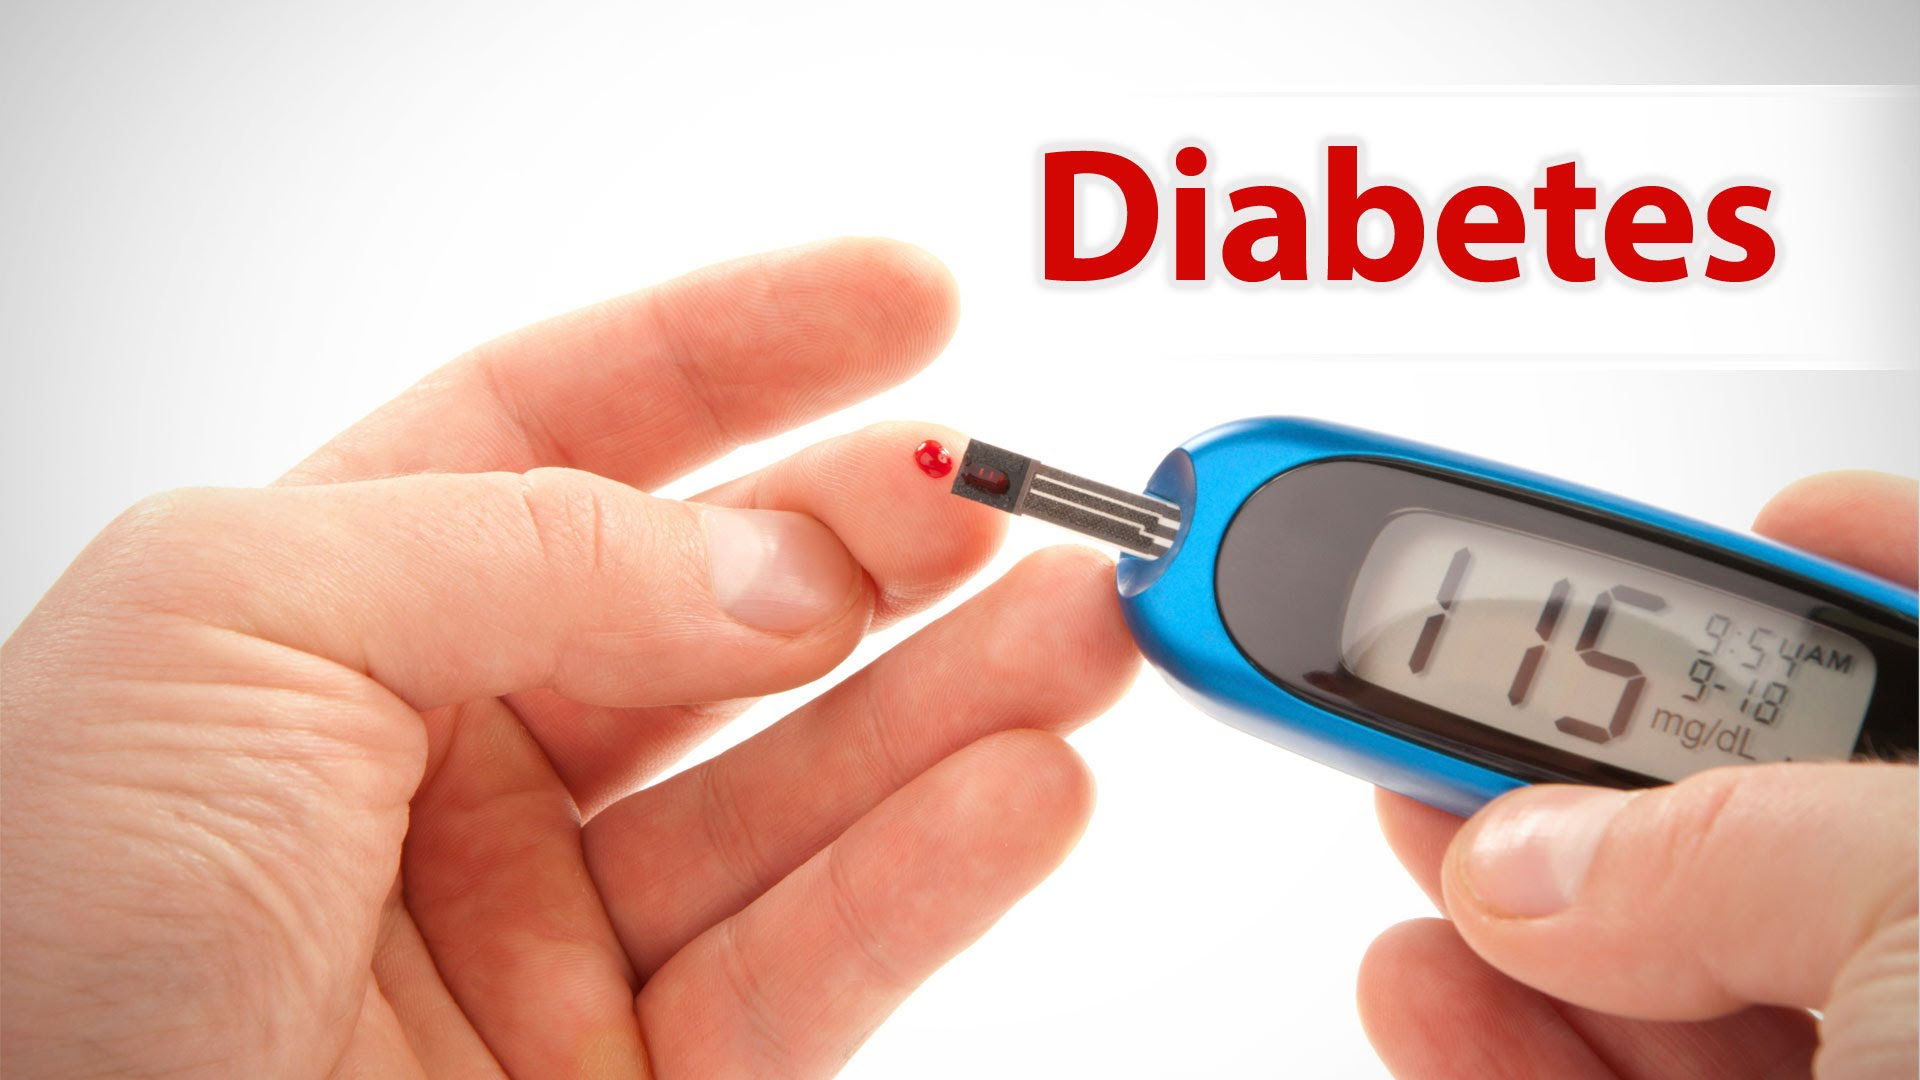 http://medintegra.es/wp-content/uploads/2017/11/slider-diabetes-2.jpg